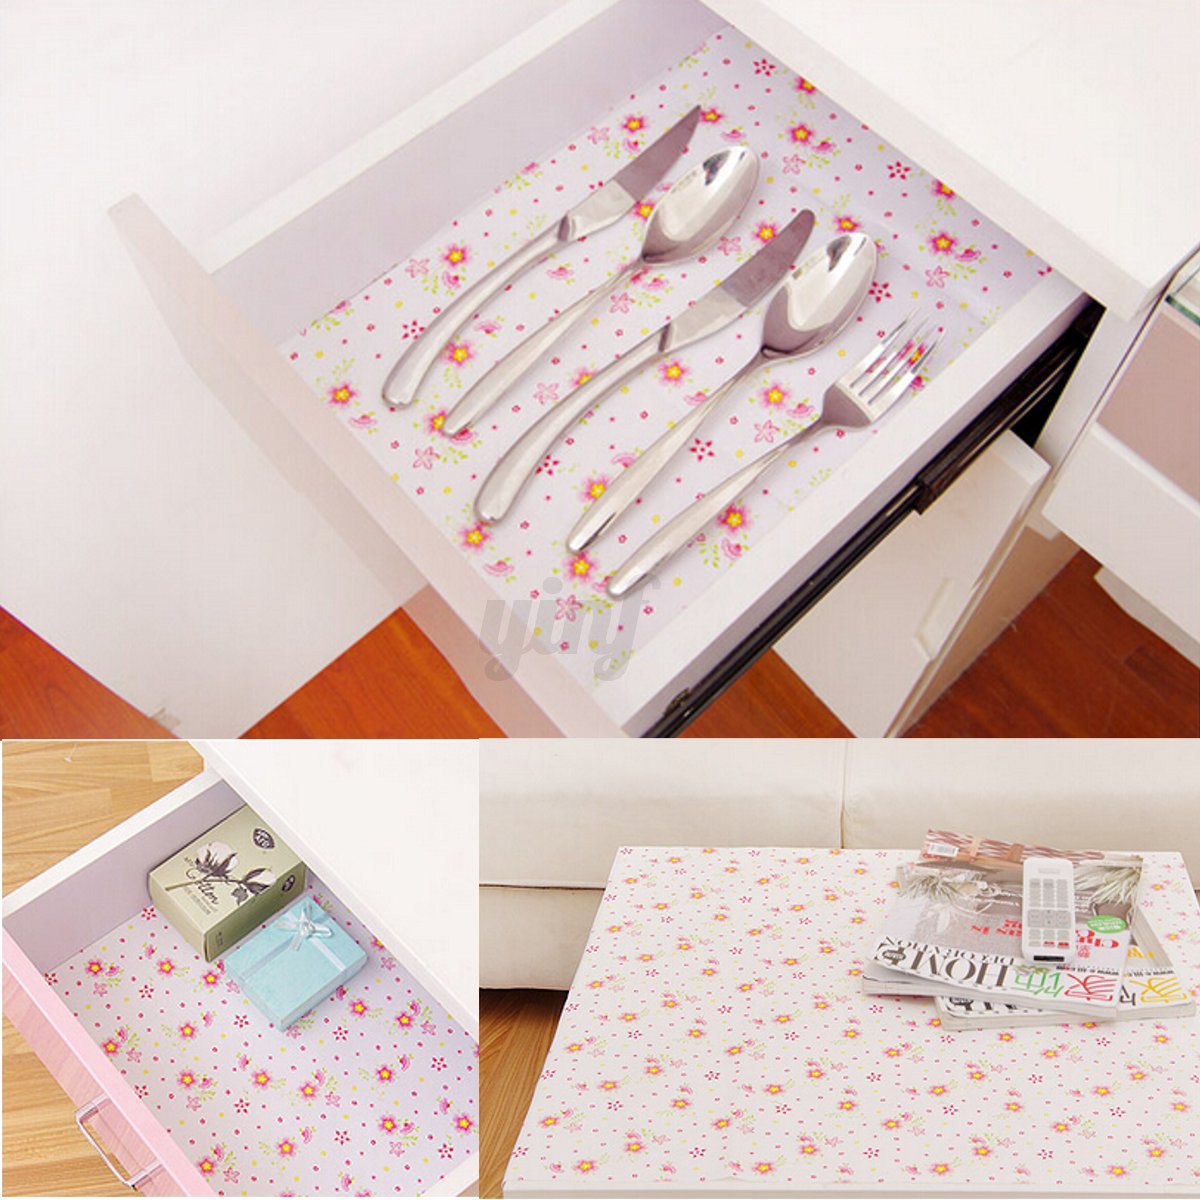 Shelf Paper For Kitchen Cabinets: Flower Dots Shelf Contact Paper Cabinet Drawer Liner